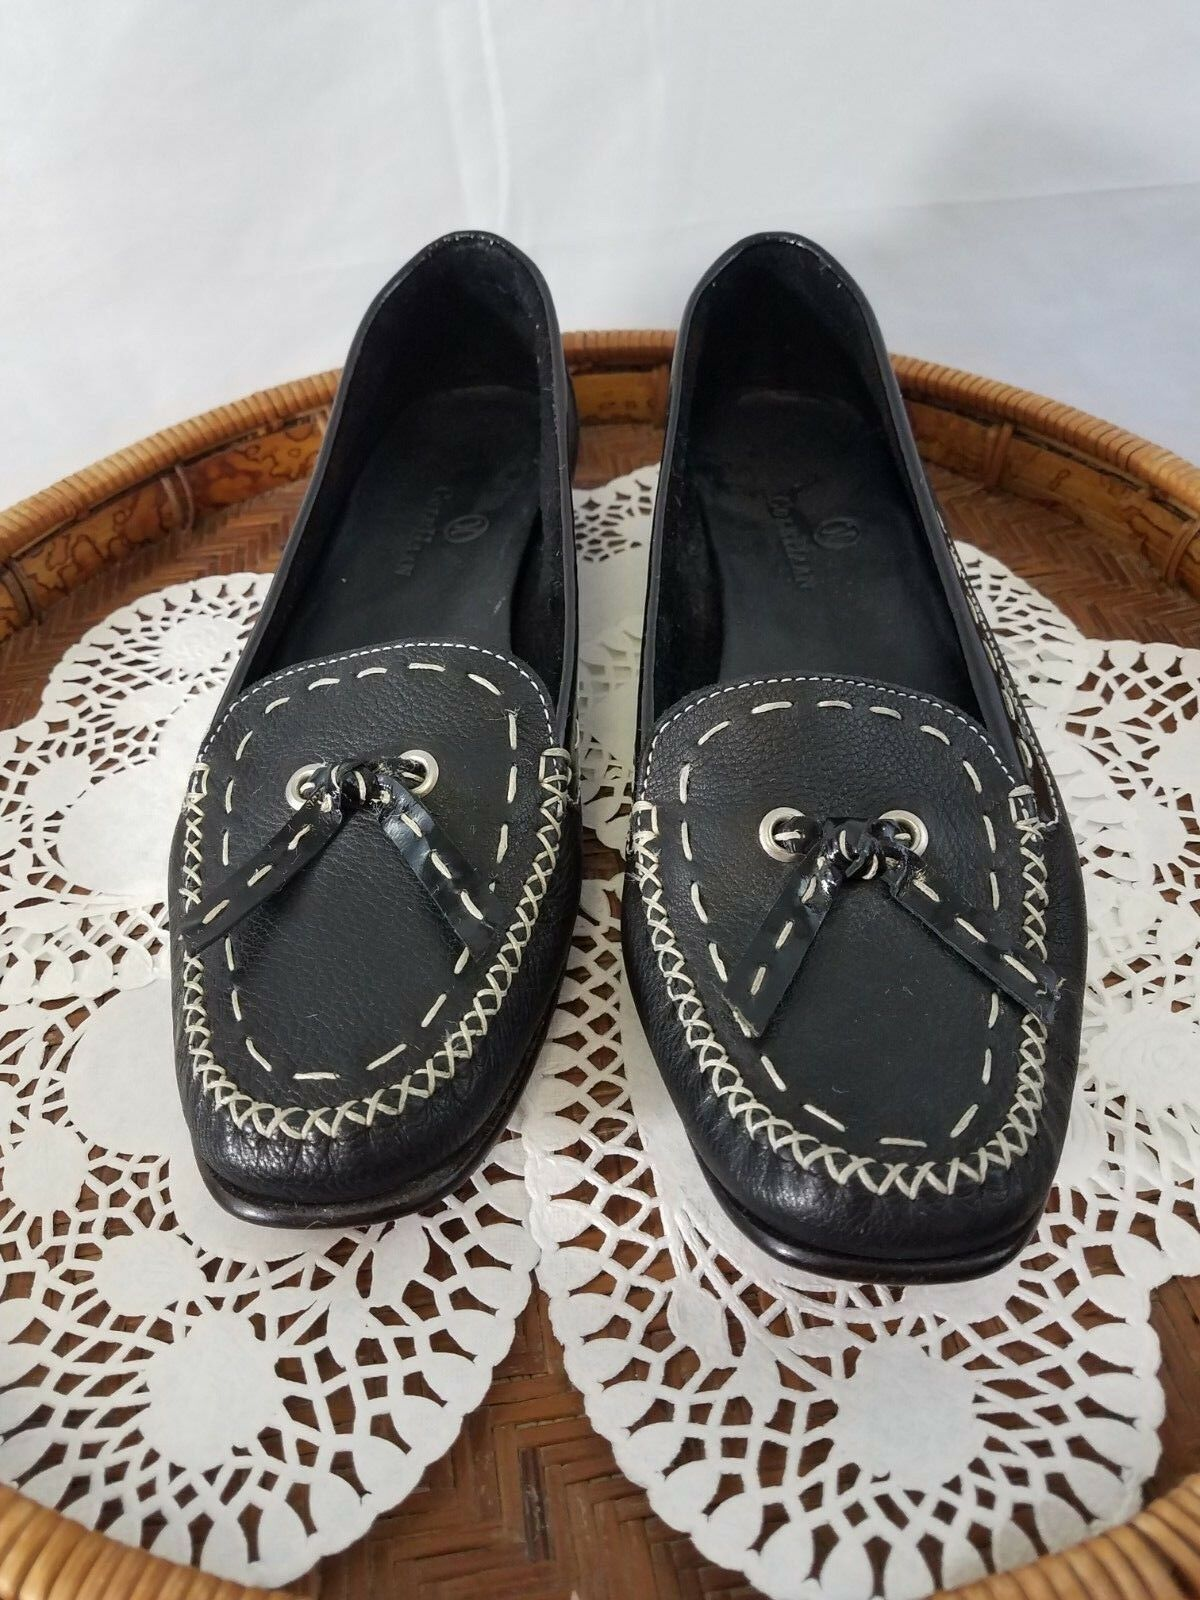 Cole Haan woman's loafers black moc toe w/ tassle leather size 71/2 B